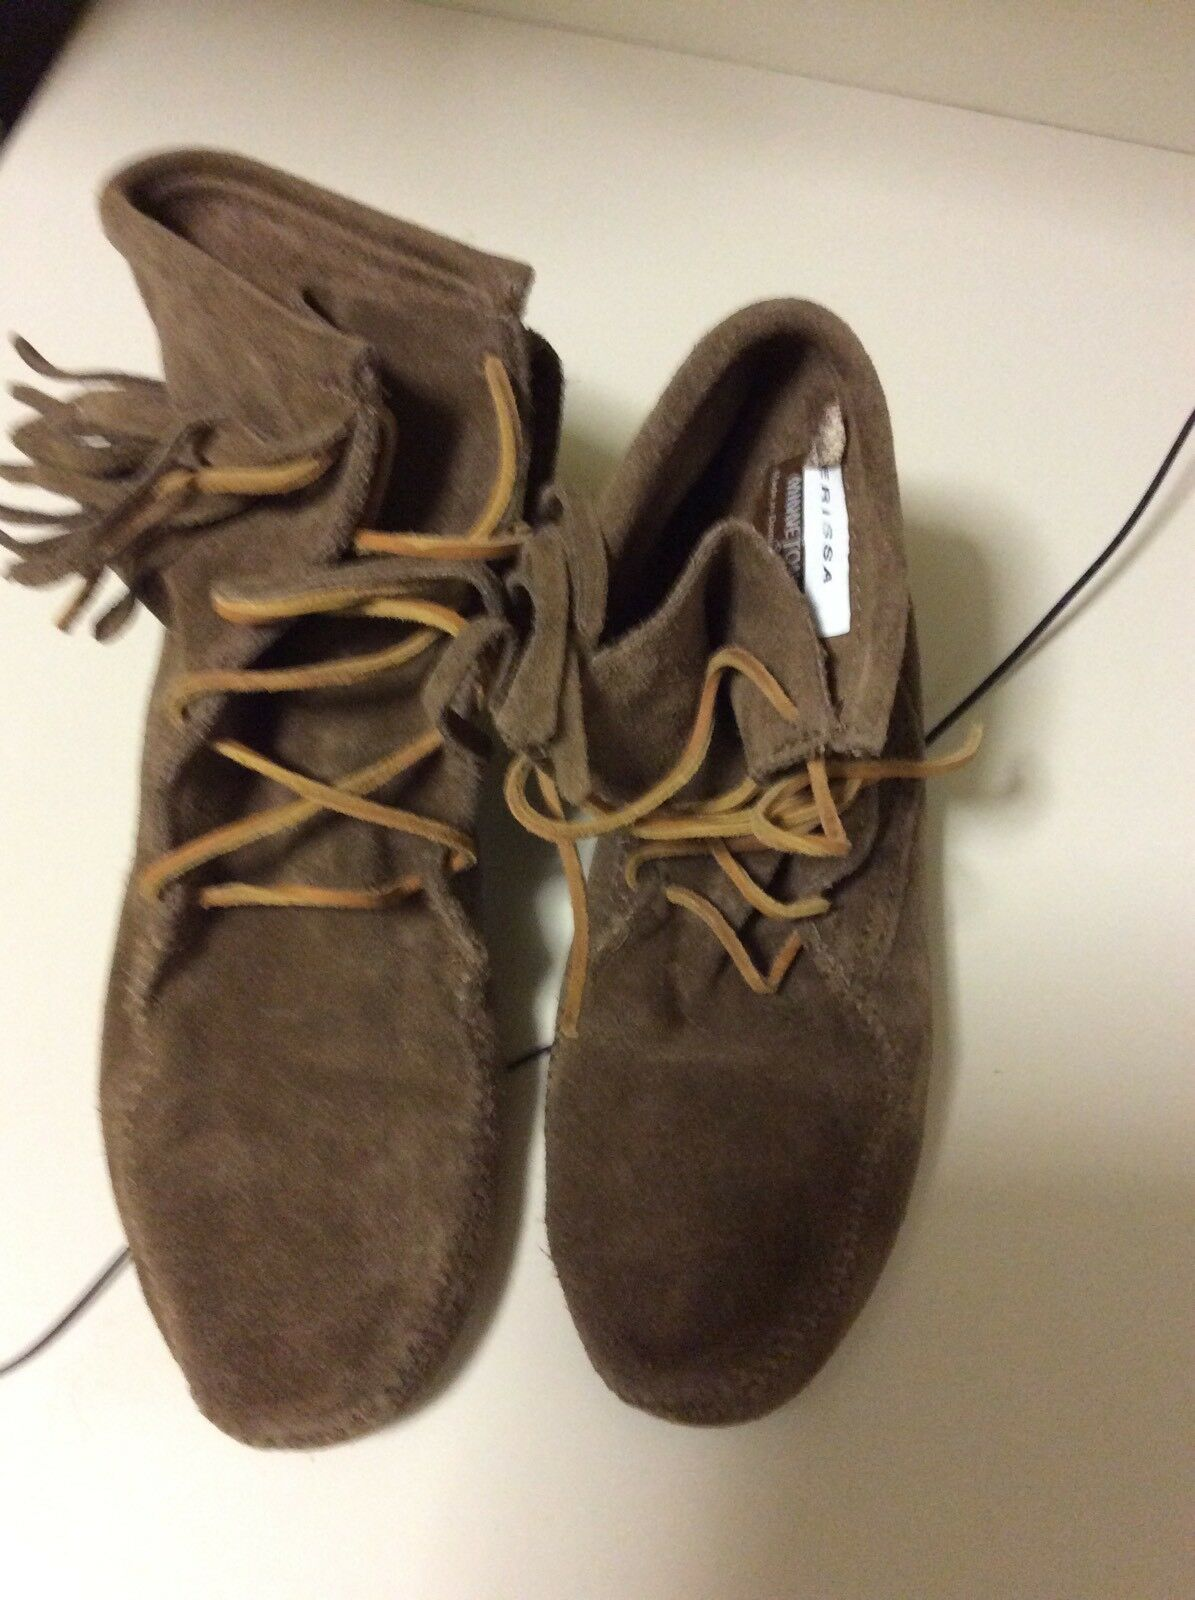 Minnetonka Womans Boots Shoes Suede Size 7